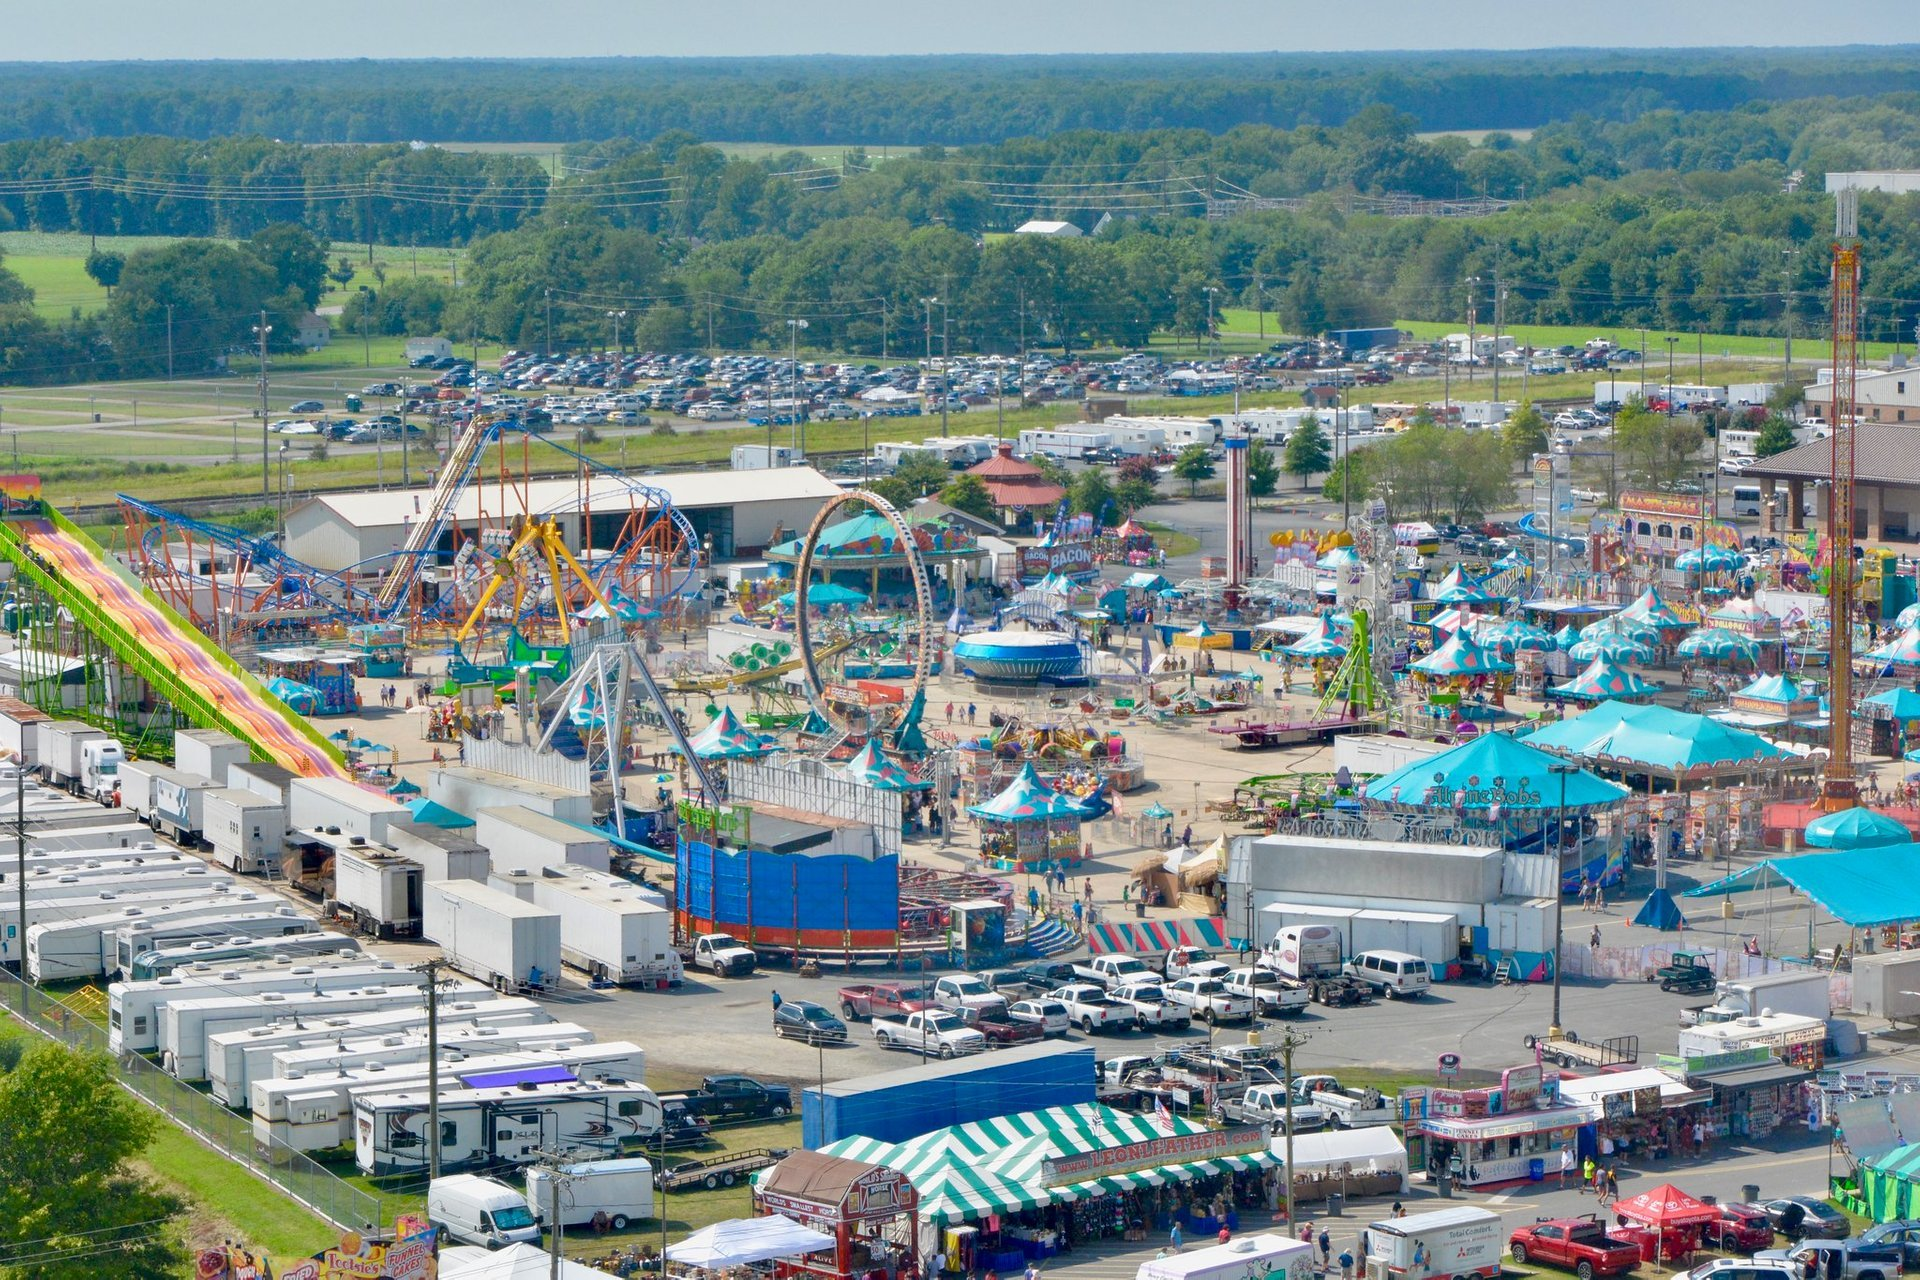 Delaware State Fair in Delaware - Best Season 2020